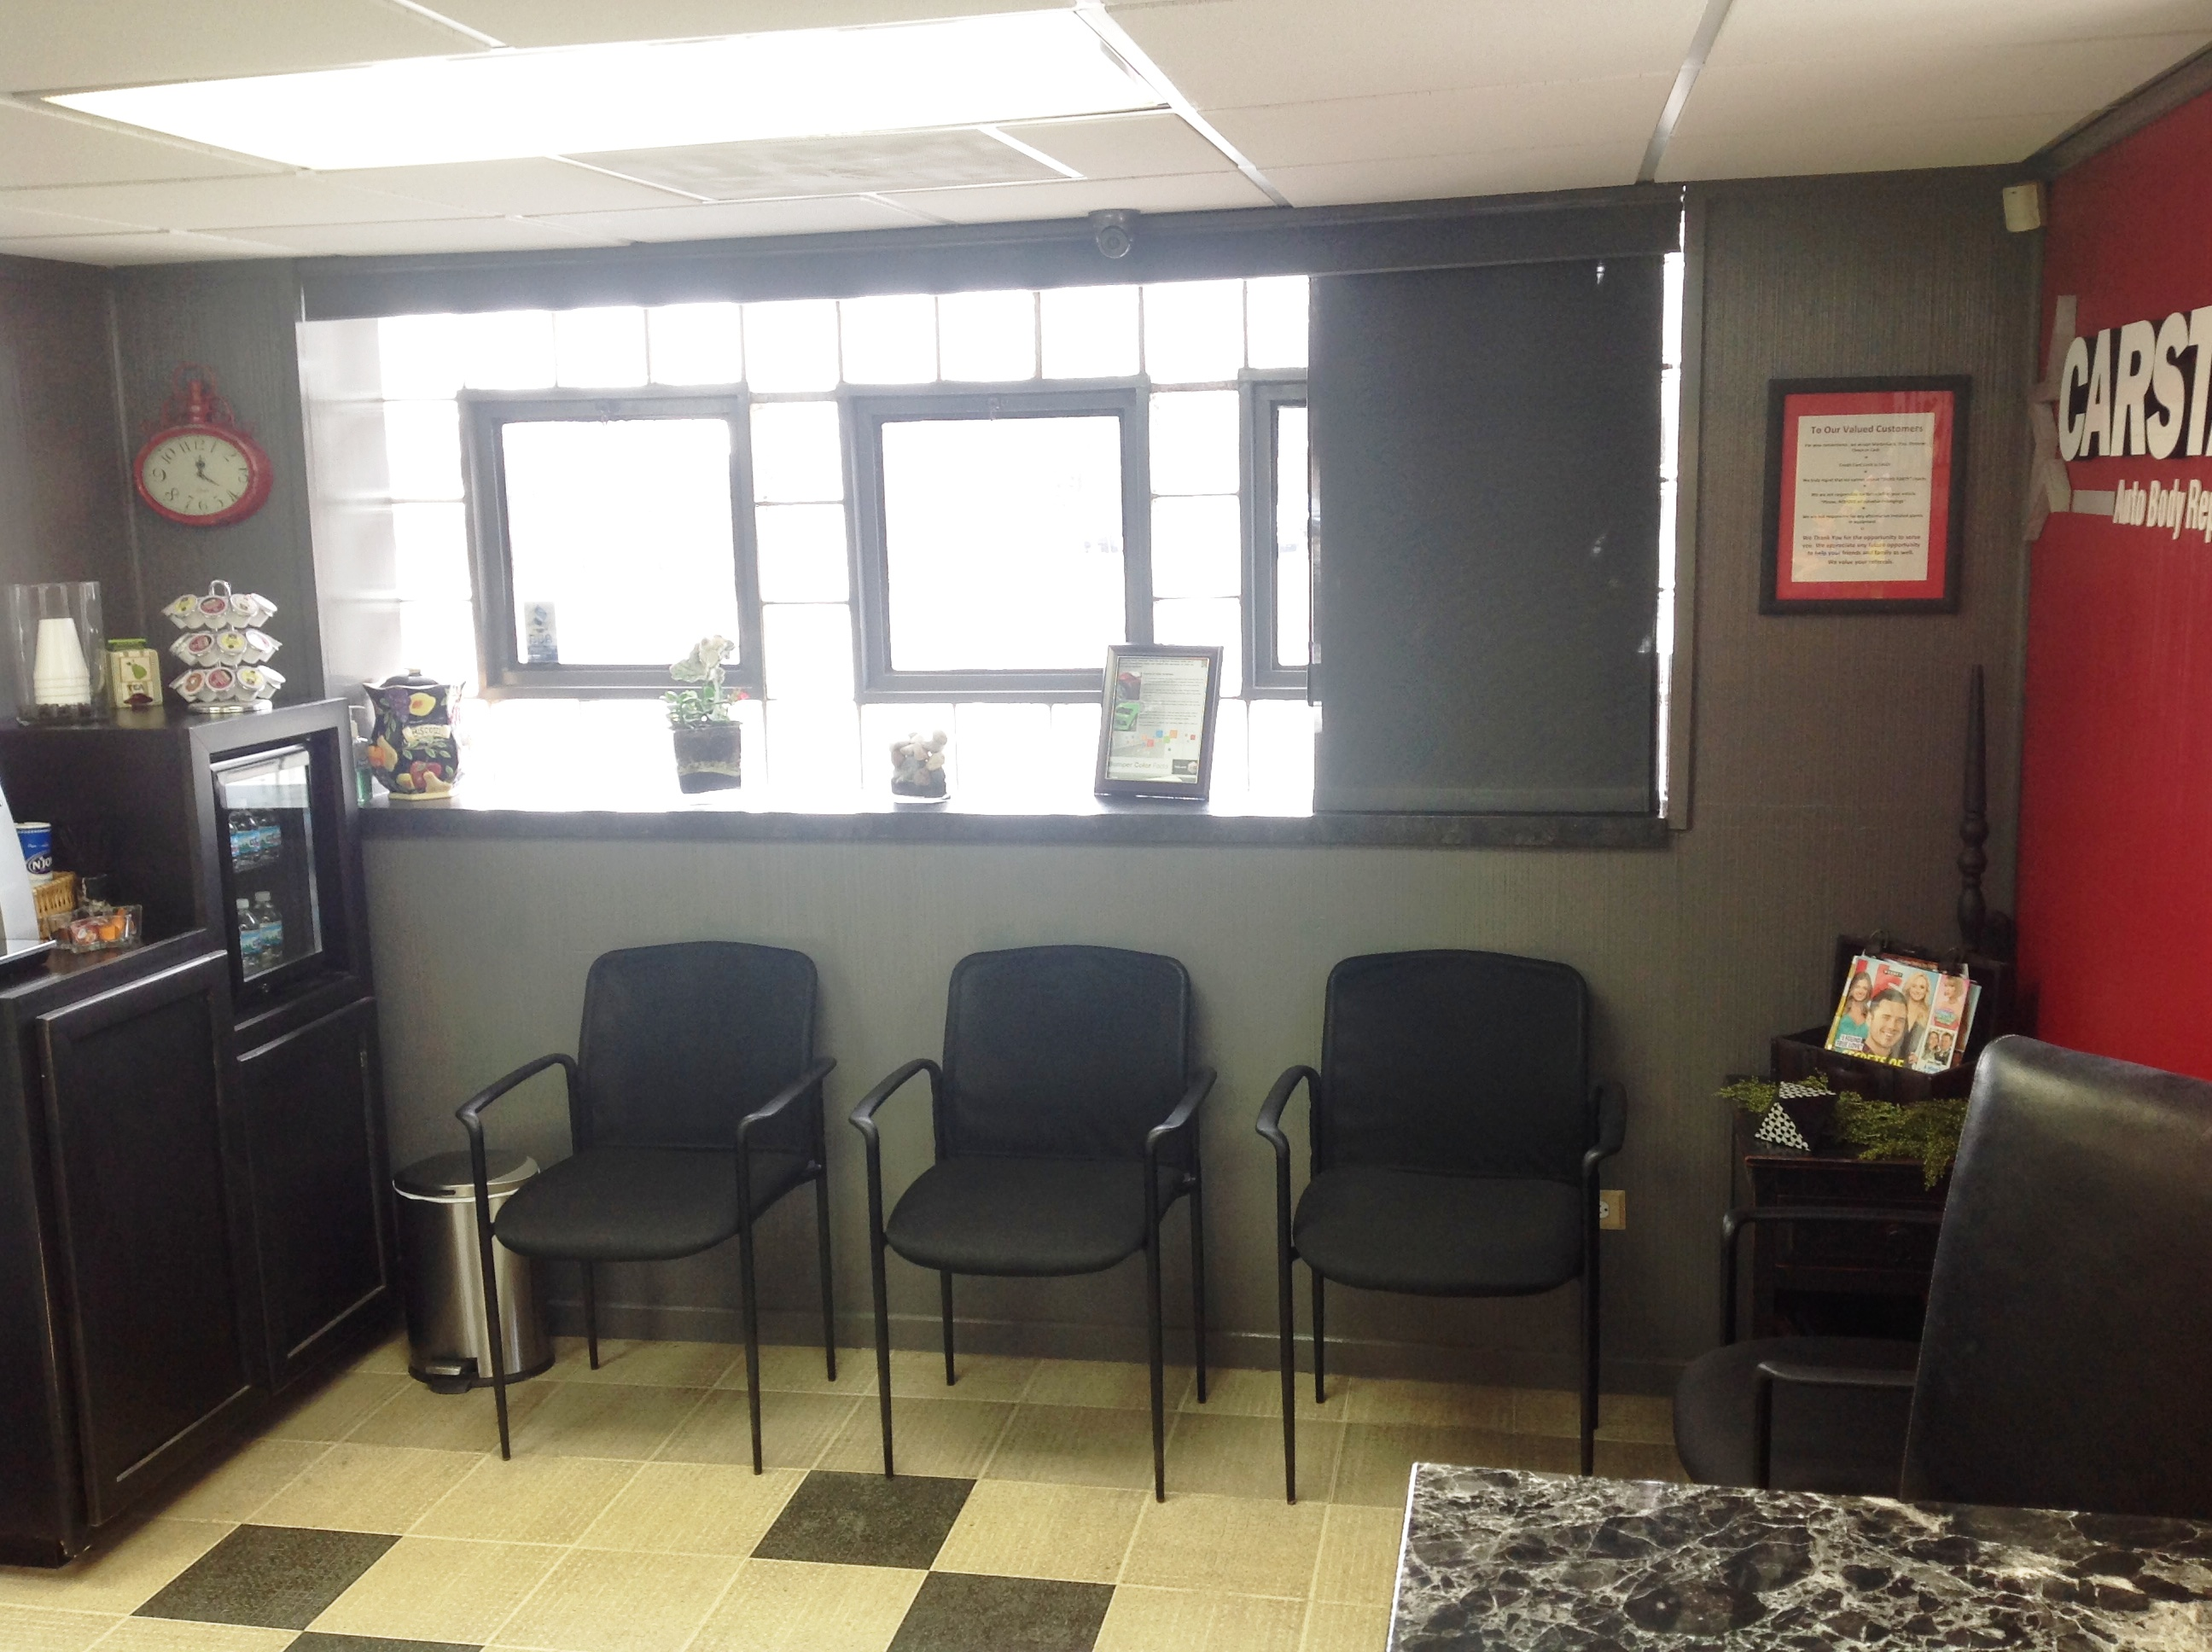 Wally's CARSTAR Auto Body: Waiting Area